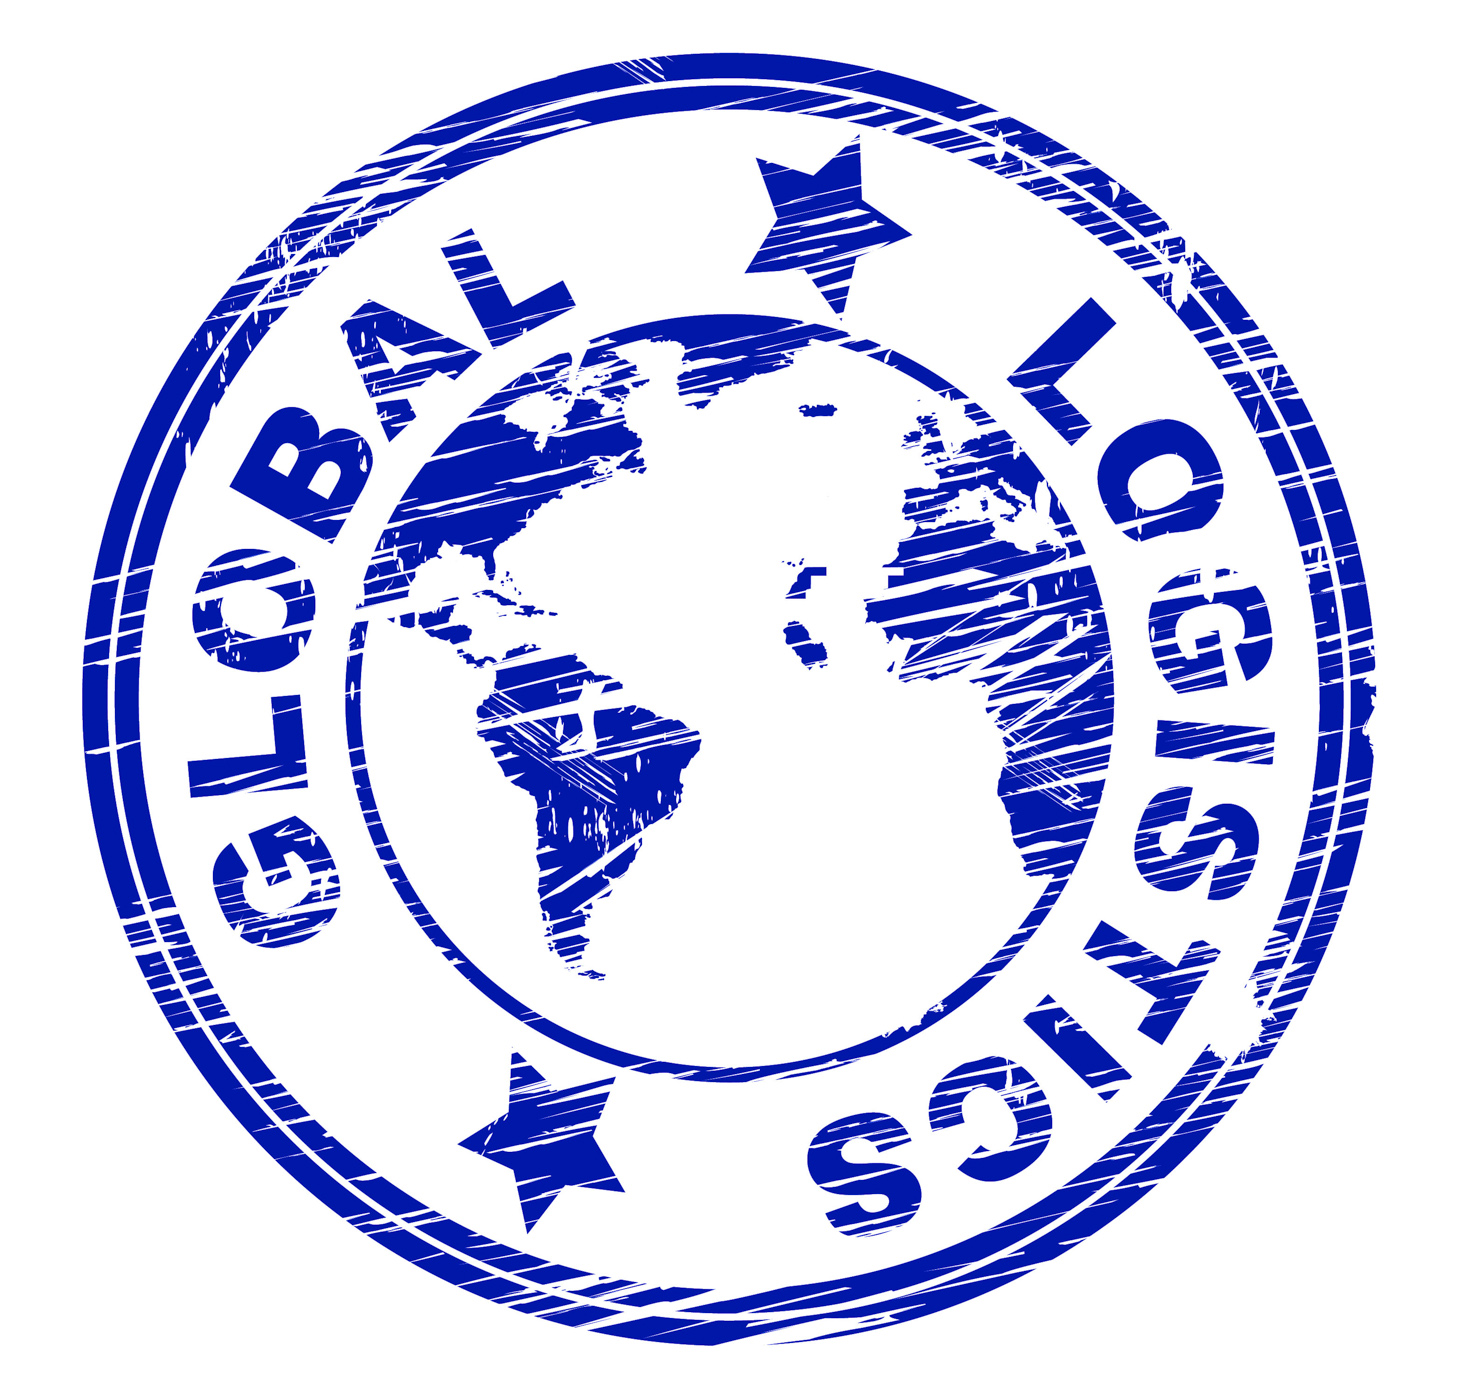 Global logistics represents coordination globally and strategies photo